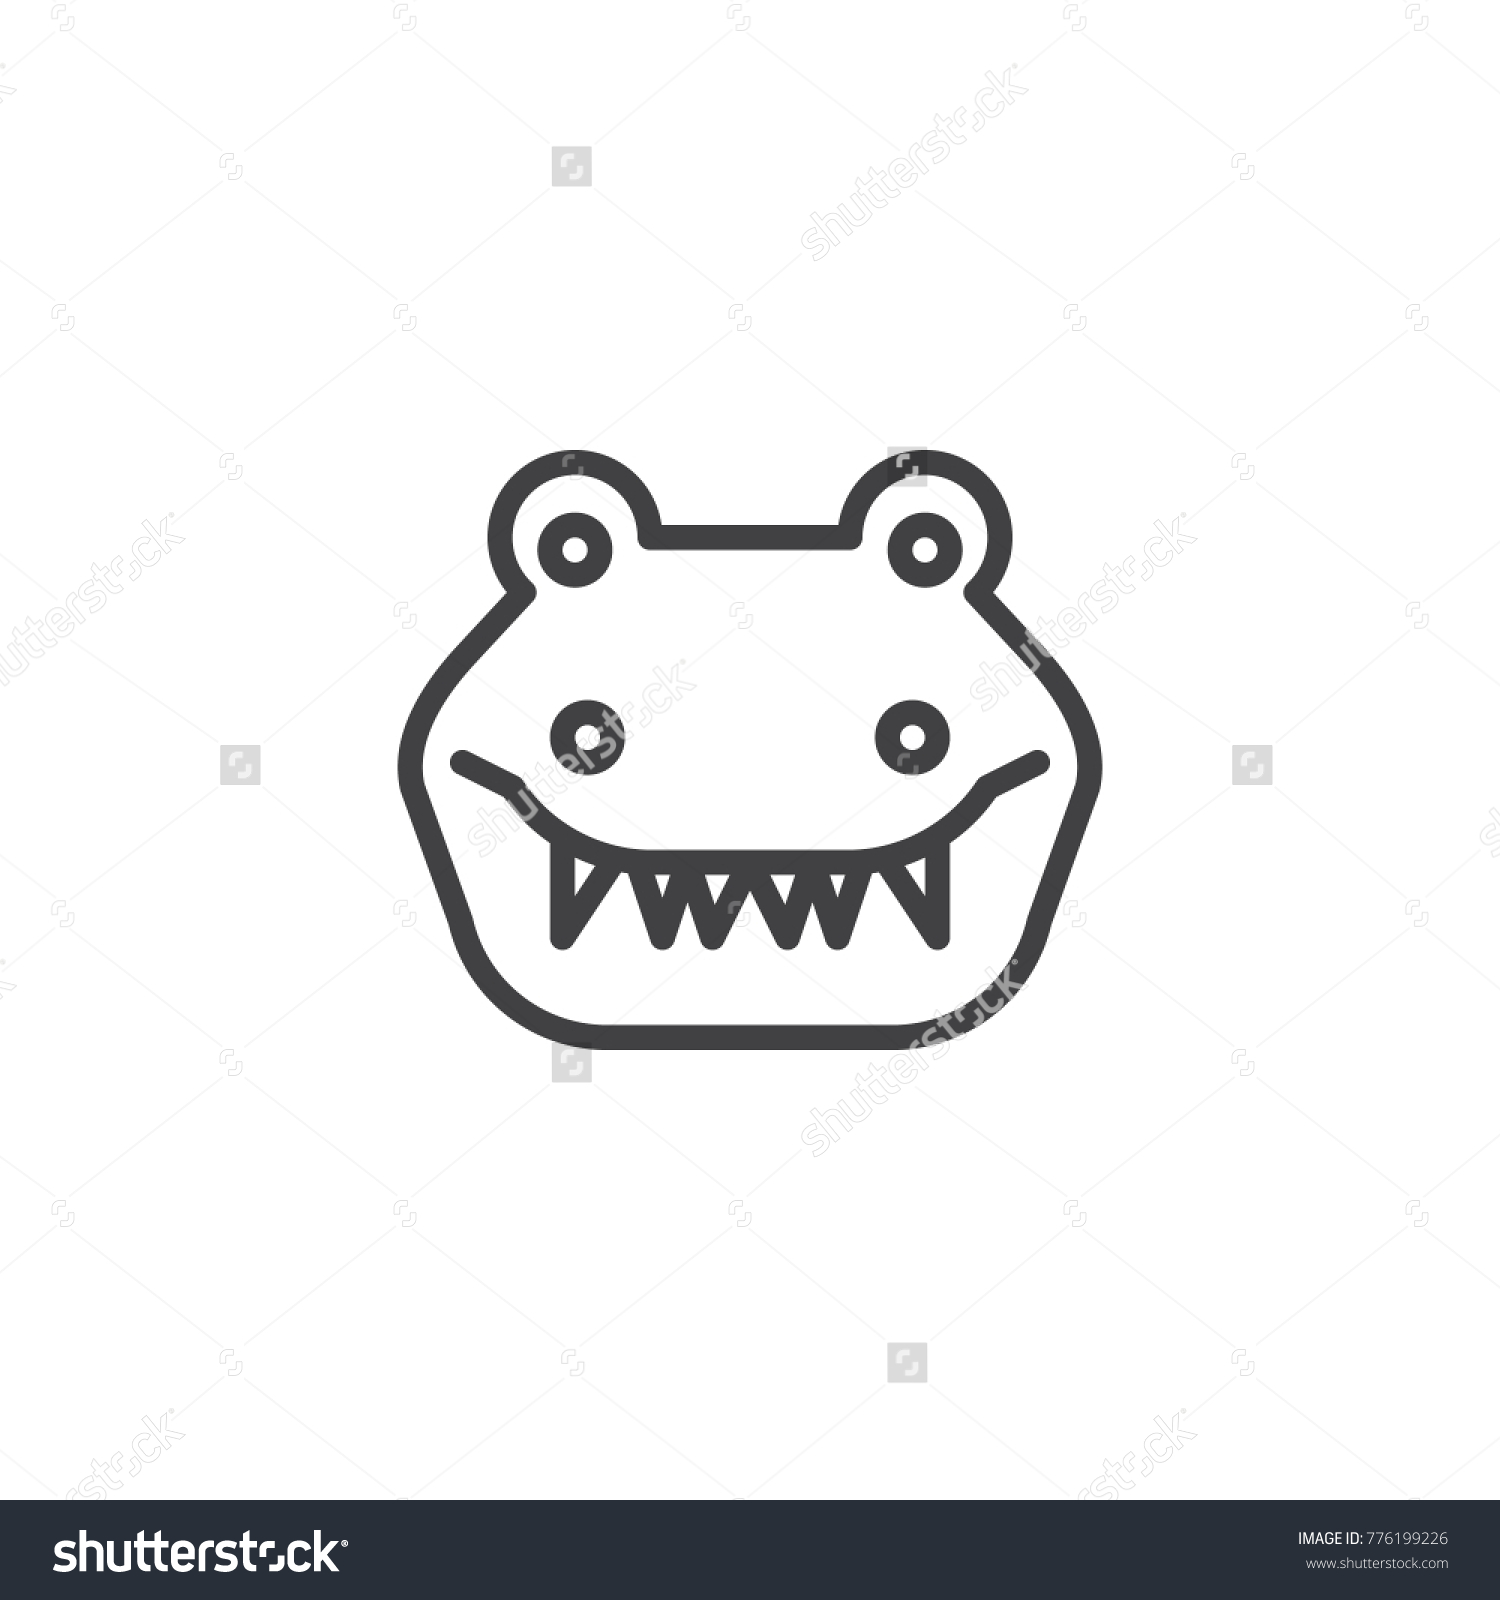 Crocodile Head Line Icon Outline Vector Sign Linear Style Pictogram Isolated On White